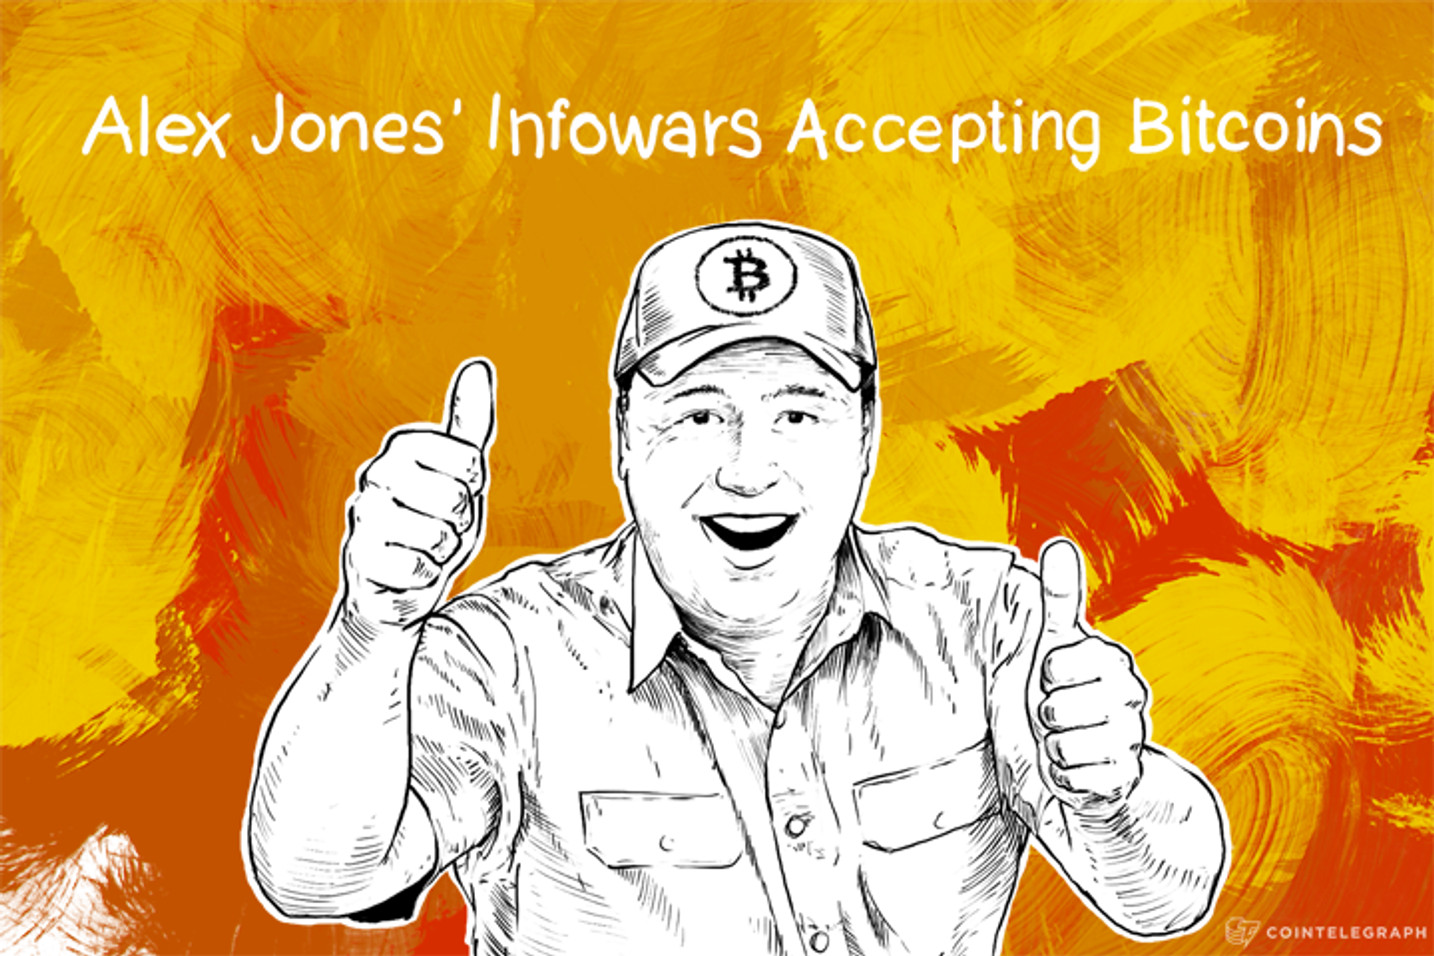 Alex Jones' Infowars Accepting Bitcoins